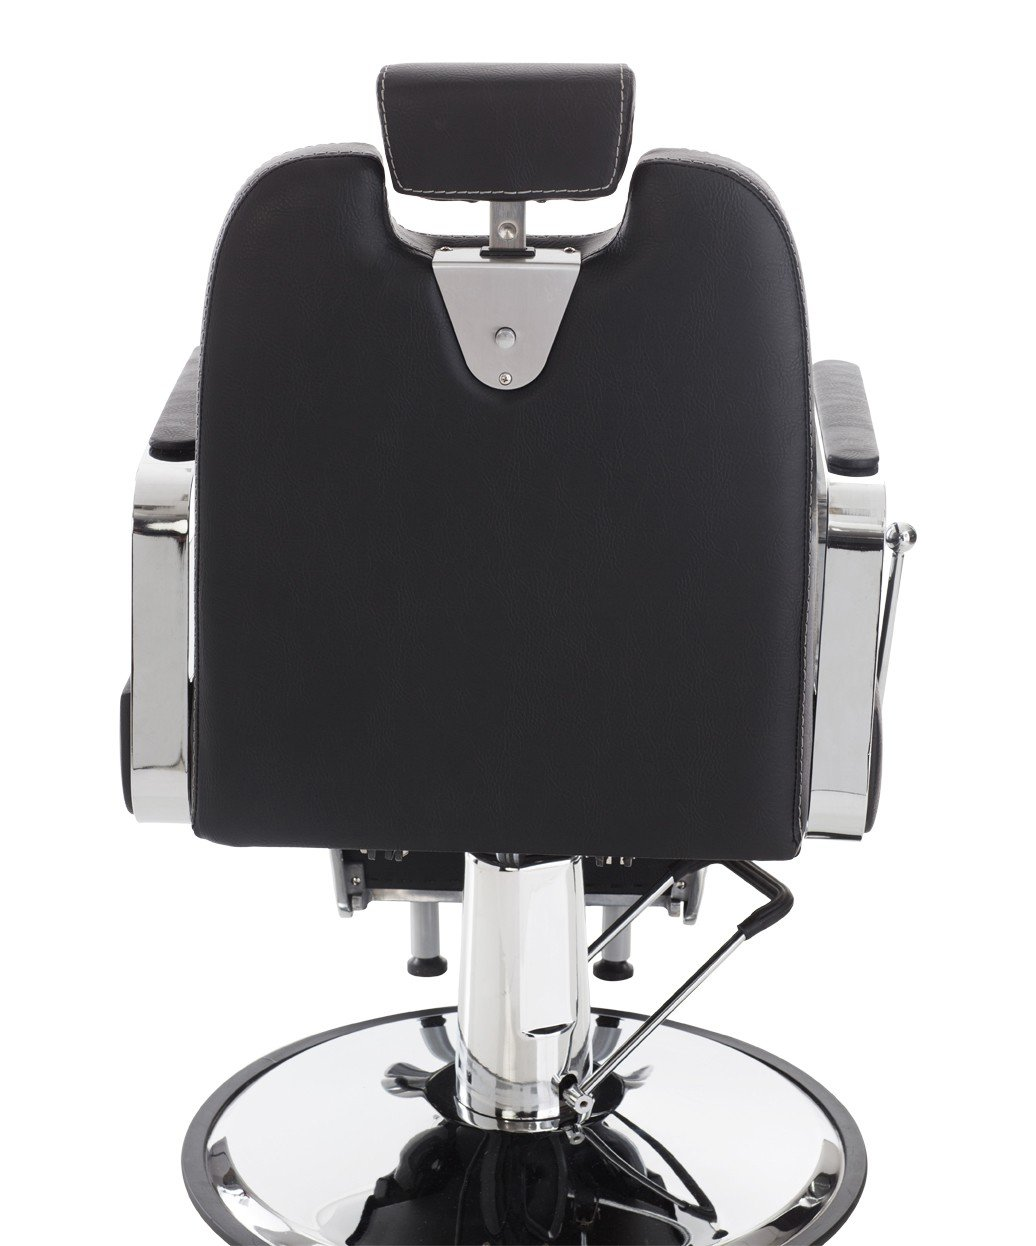 Amazon.com: BR Belleza Lenox profesional Silla de Barber: Beauty